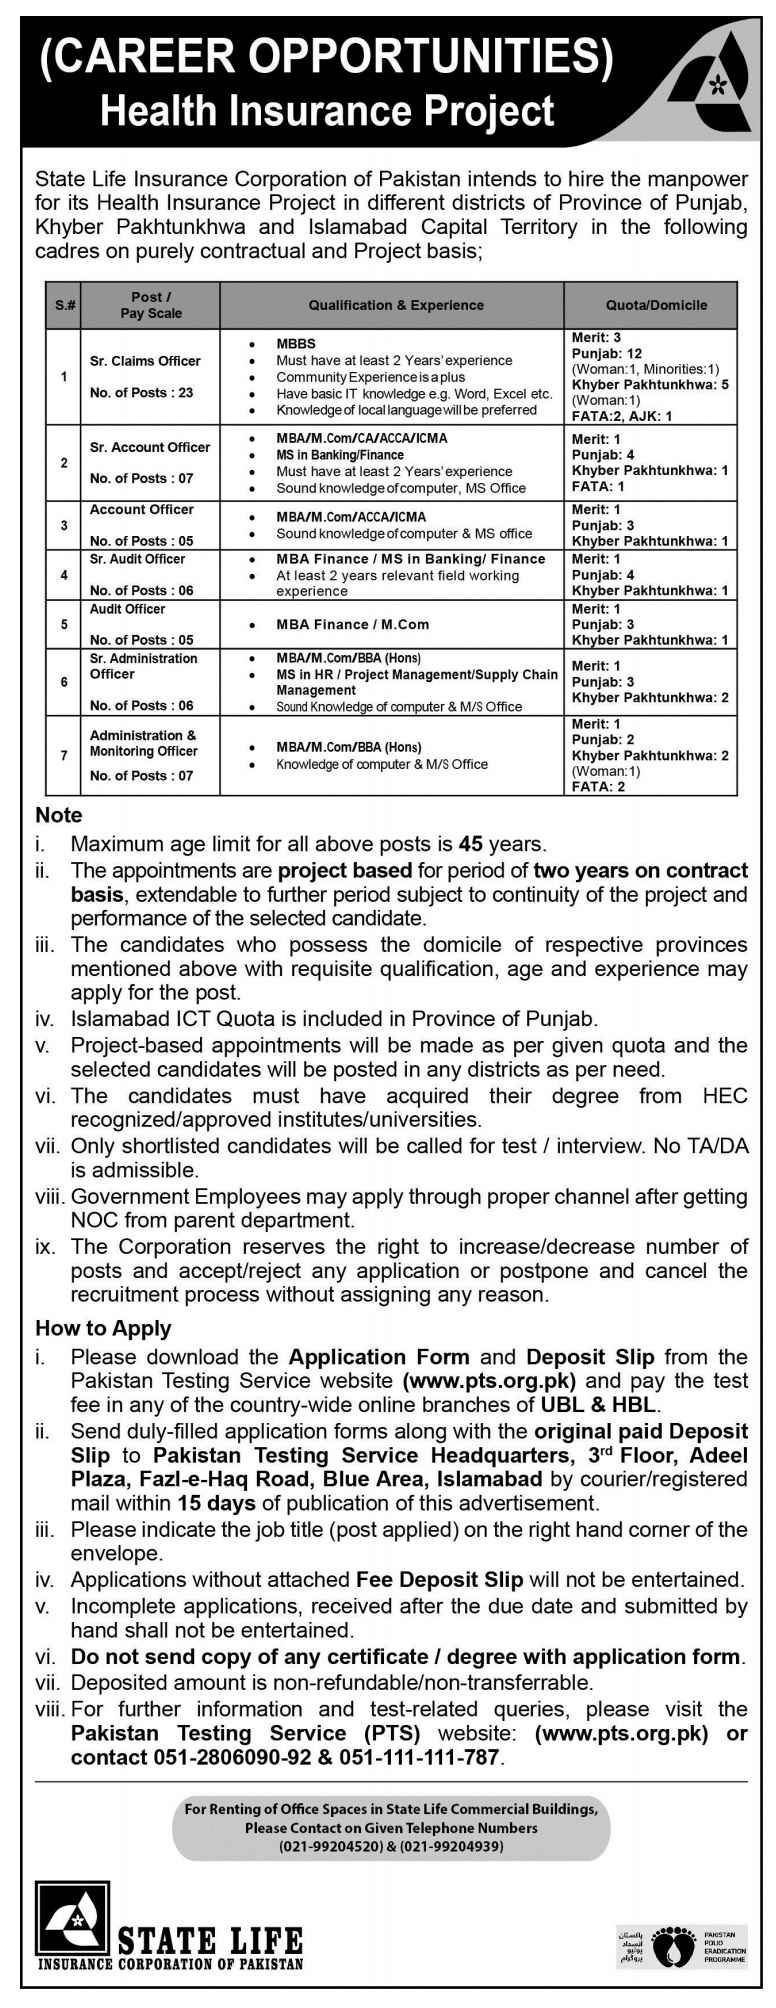 State Life Insurance Corporation of Pakistan Jobs via PTS | Multiple Positions